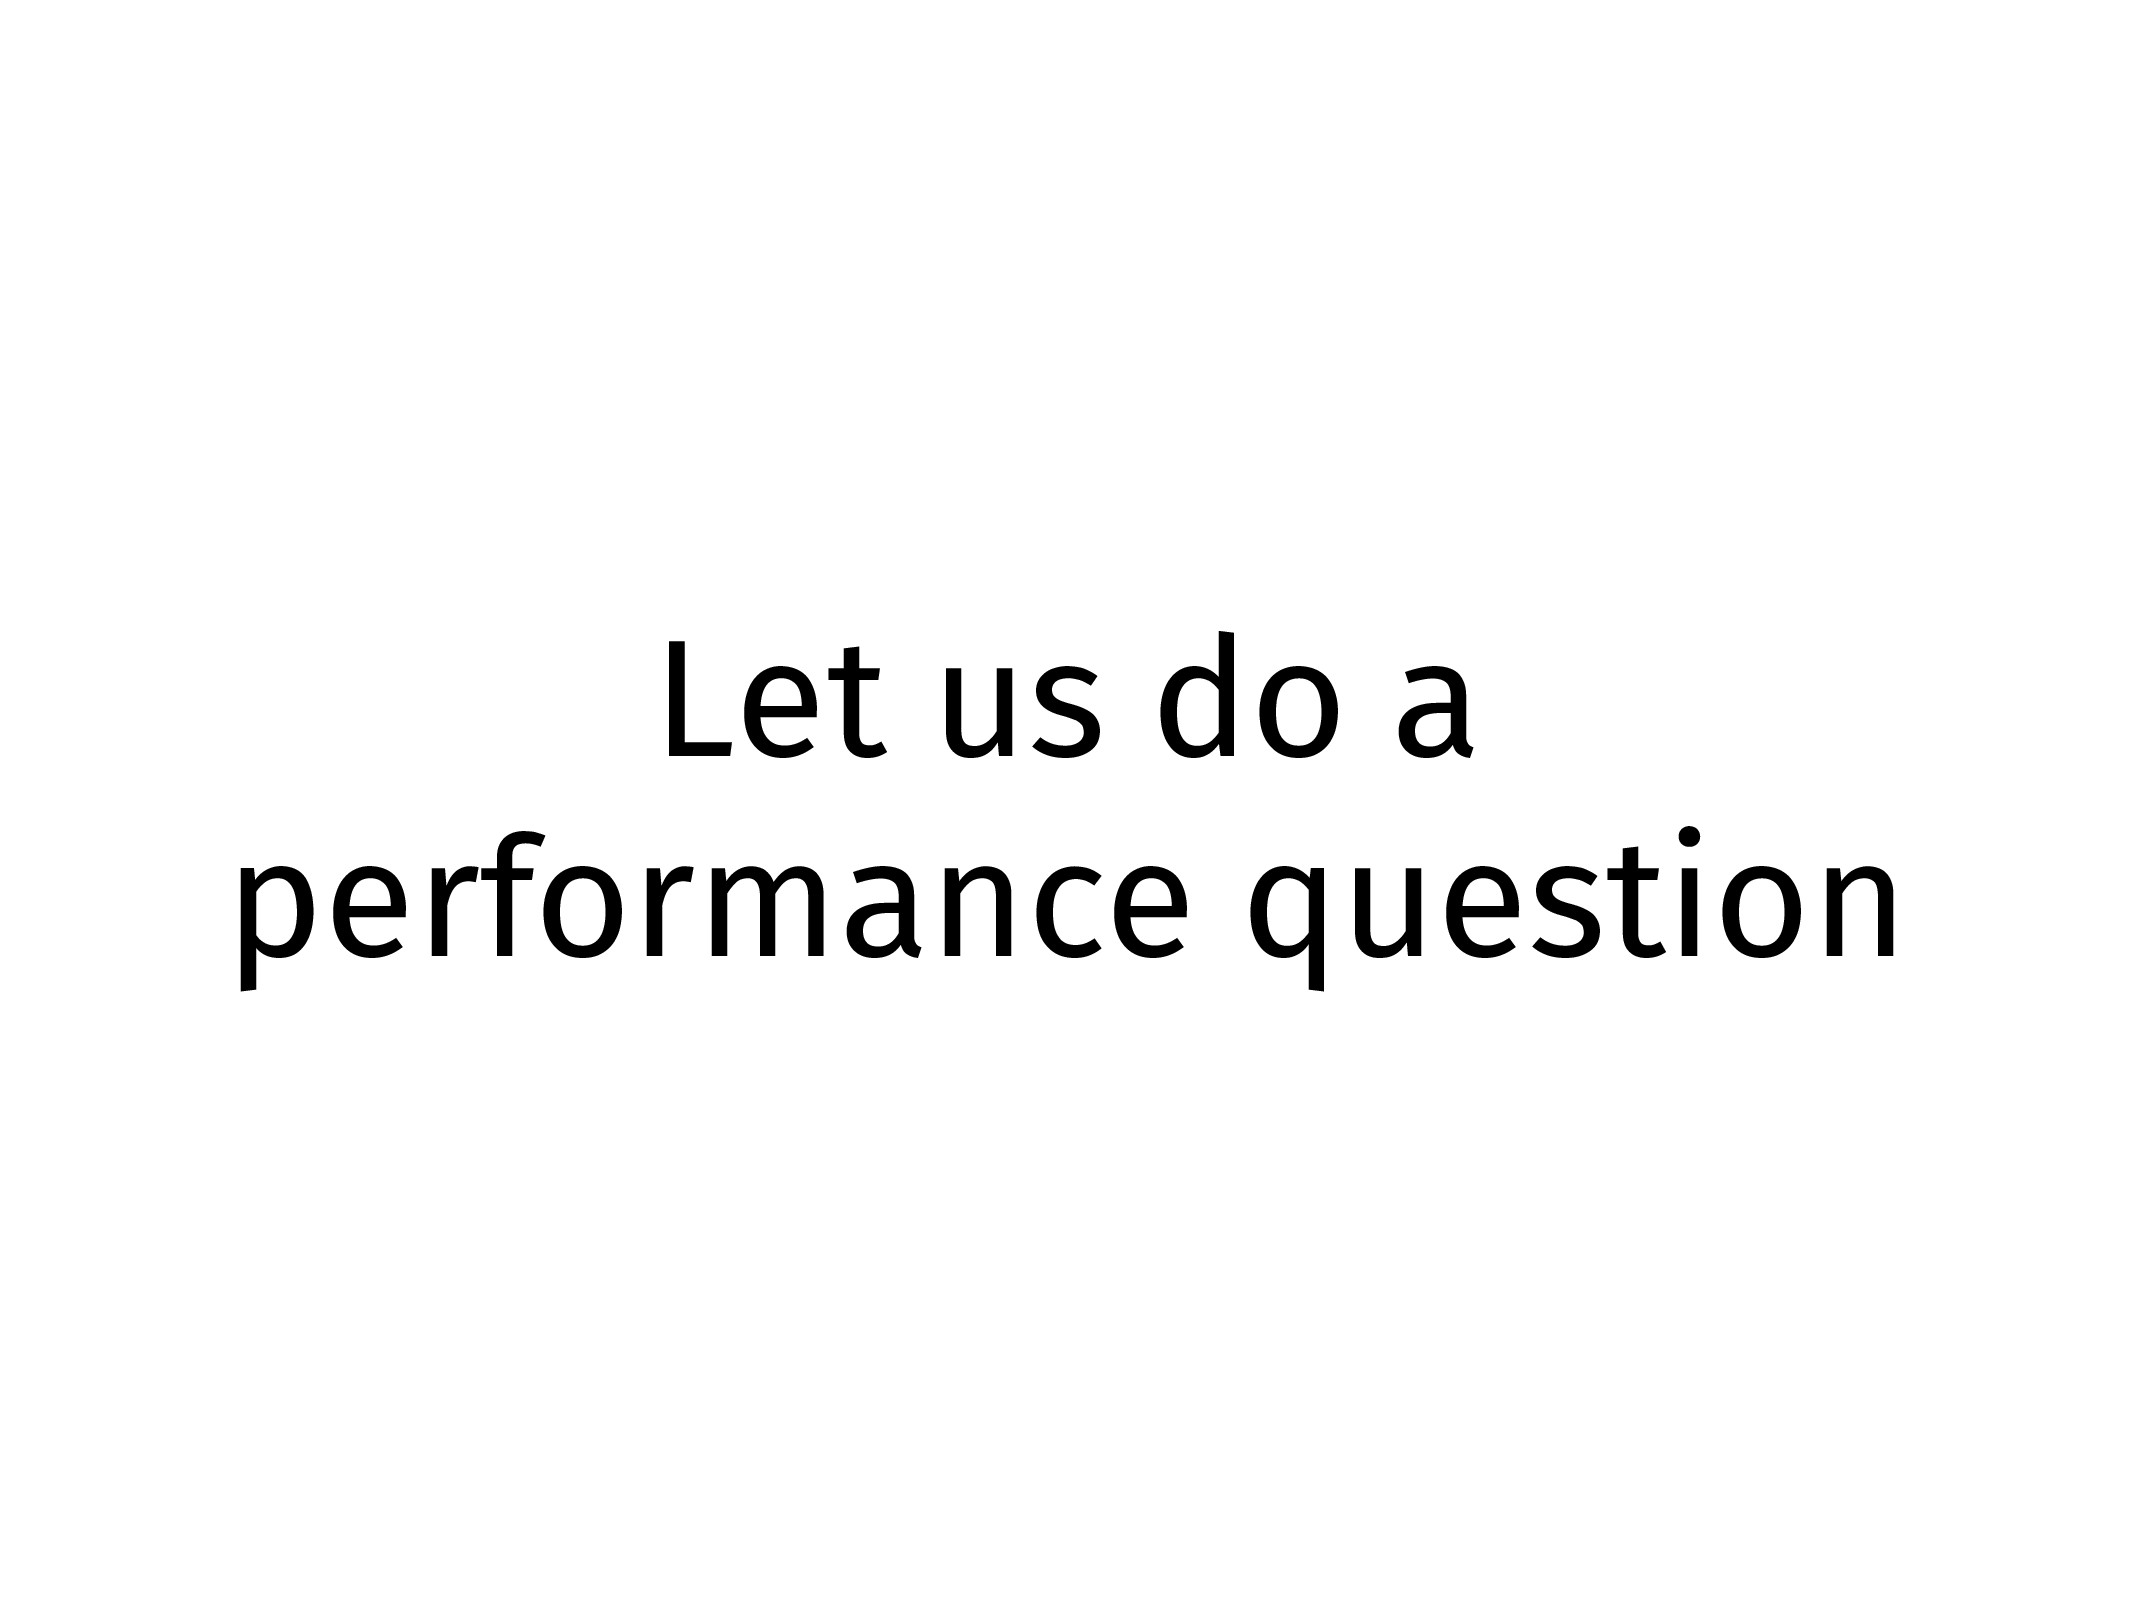 Let us do a performance question